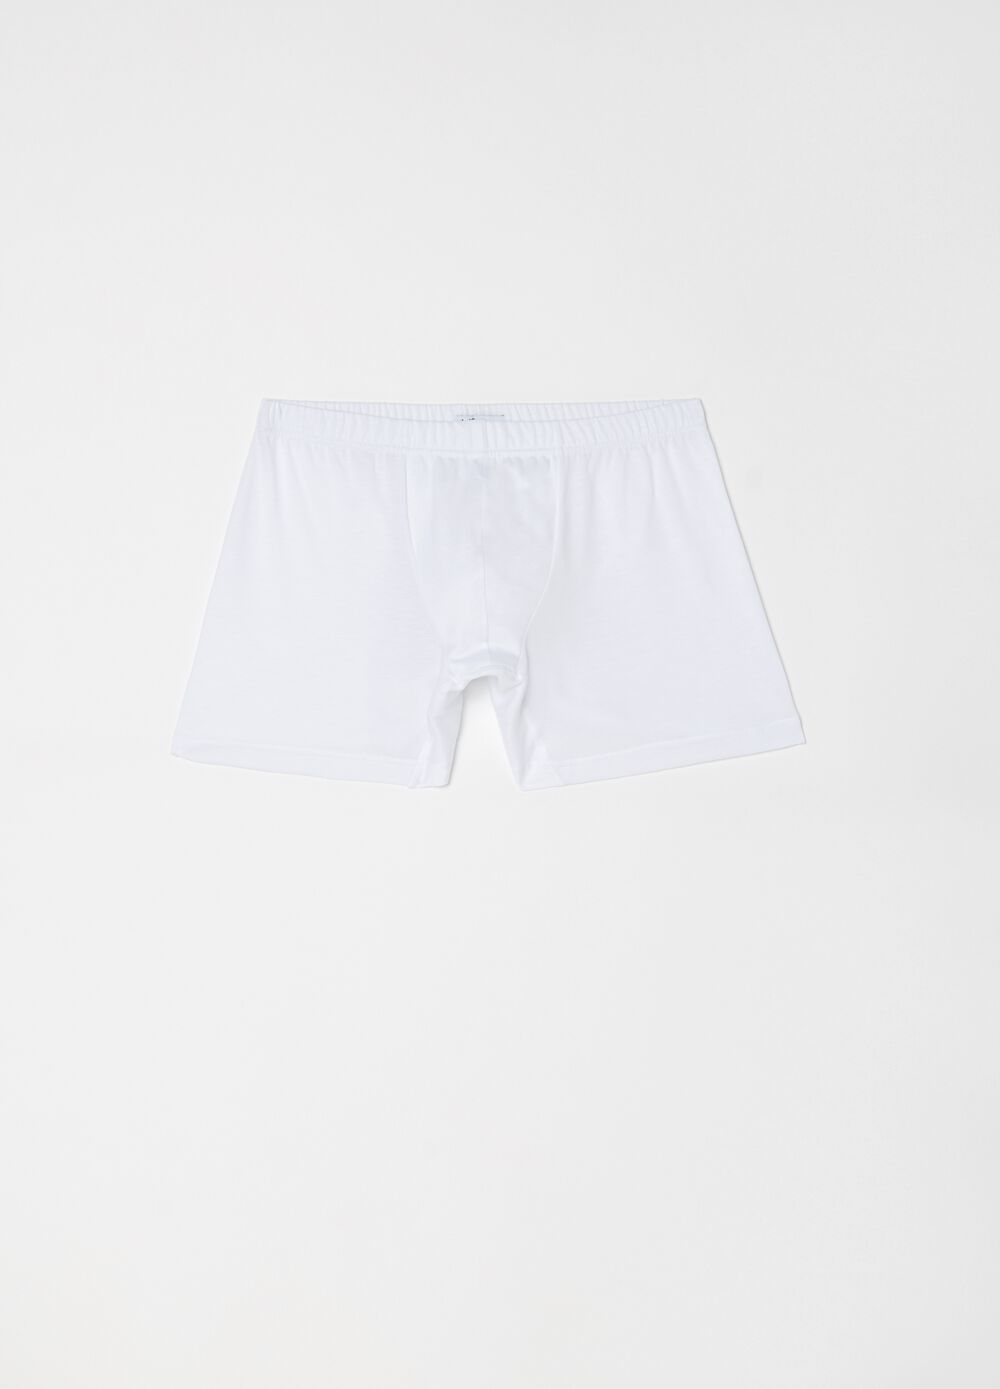 100% cotton boxer shorts with elasticated waist